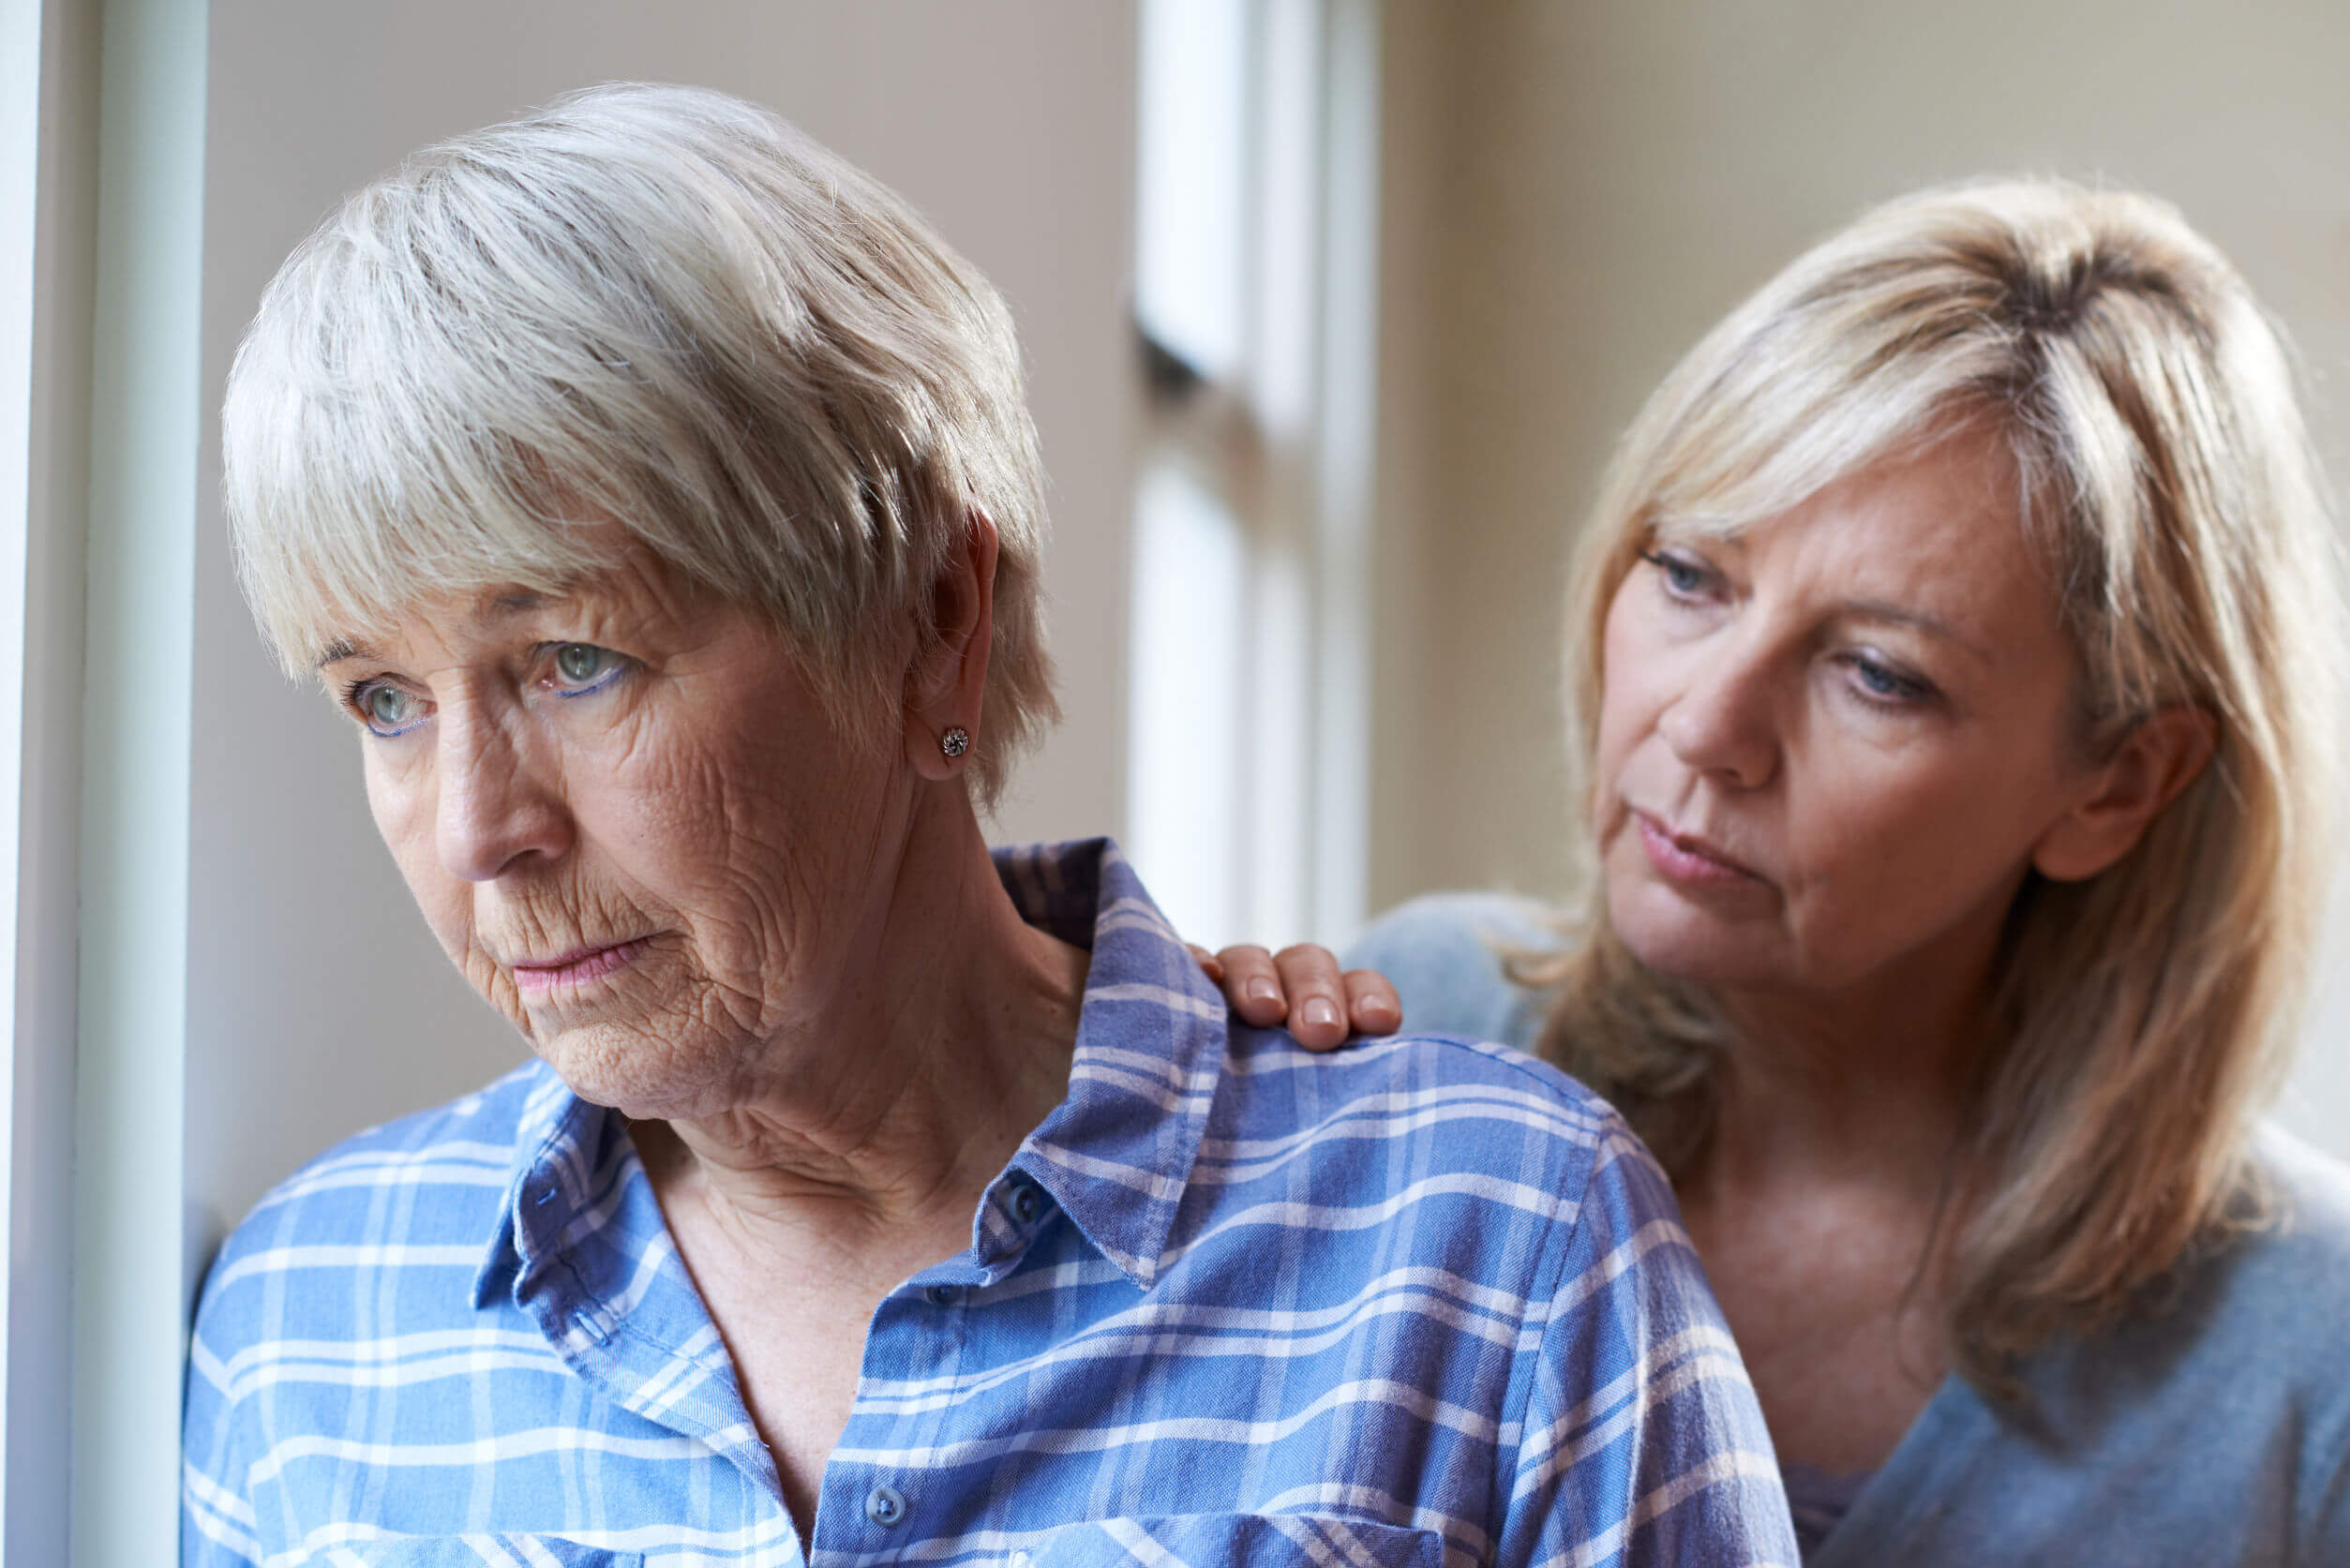 Caregiver syndrome can be effectively addressed.